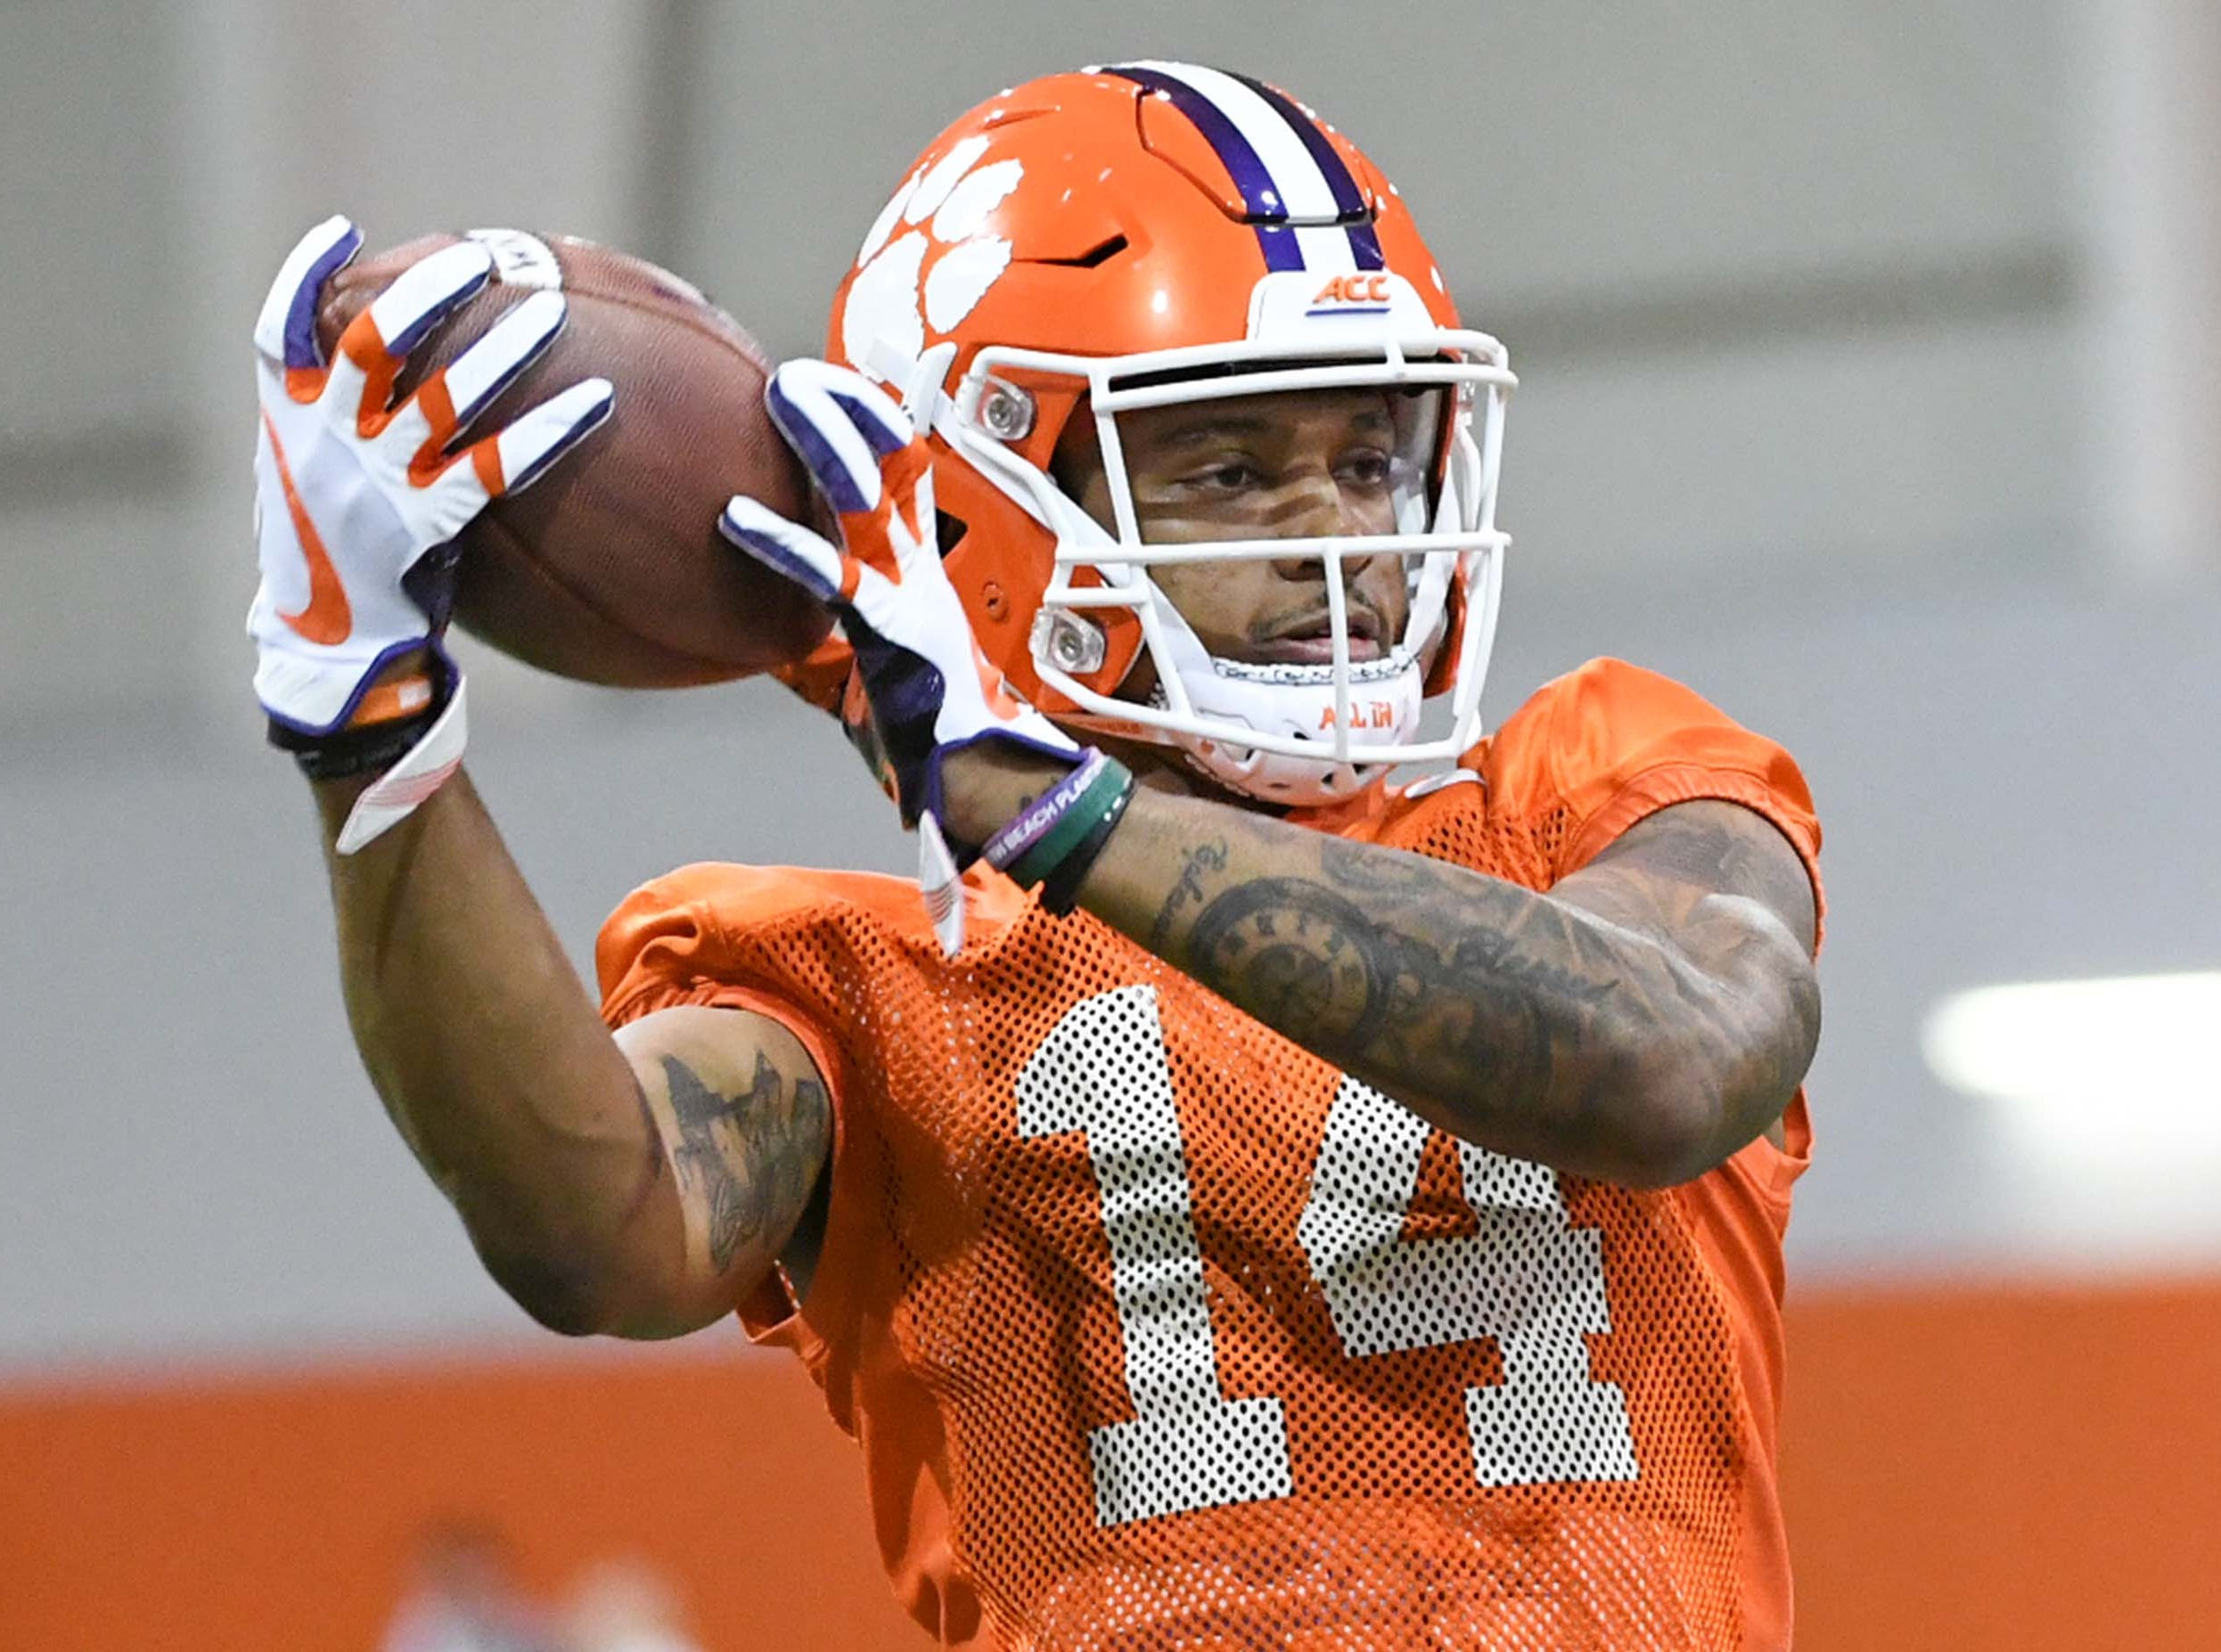 Clemson wide receiver Diondre Overton (14) catches a pass during practice at the Poe Indoor Facility in Clemson Friday.